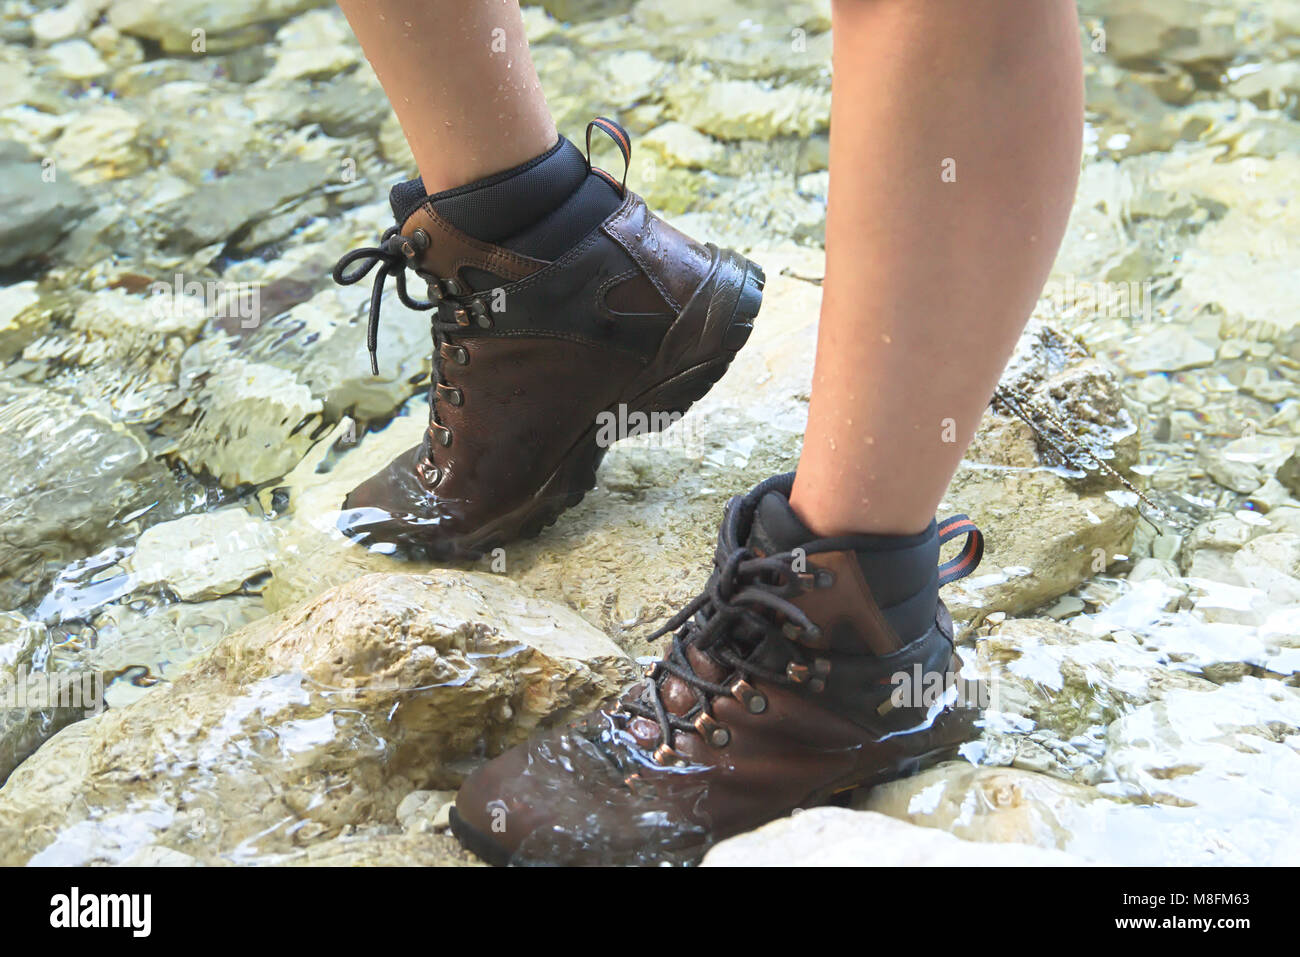 Young Woman Walking on the River with Hiking Boots - Stock Image